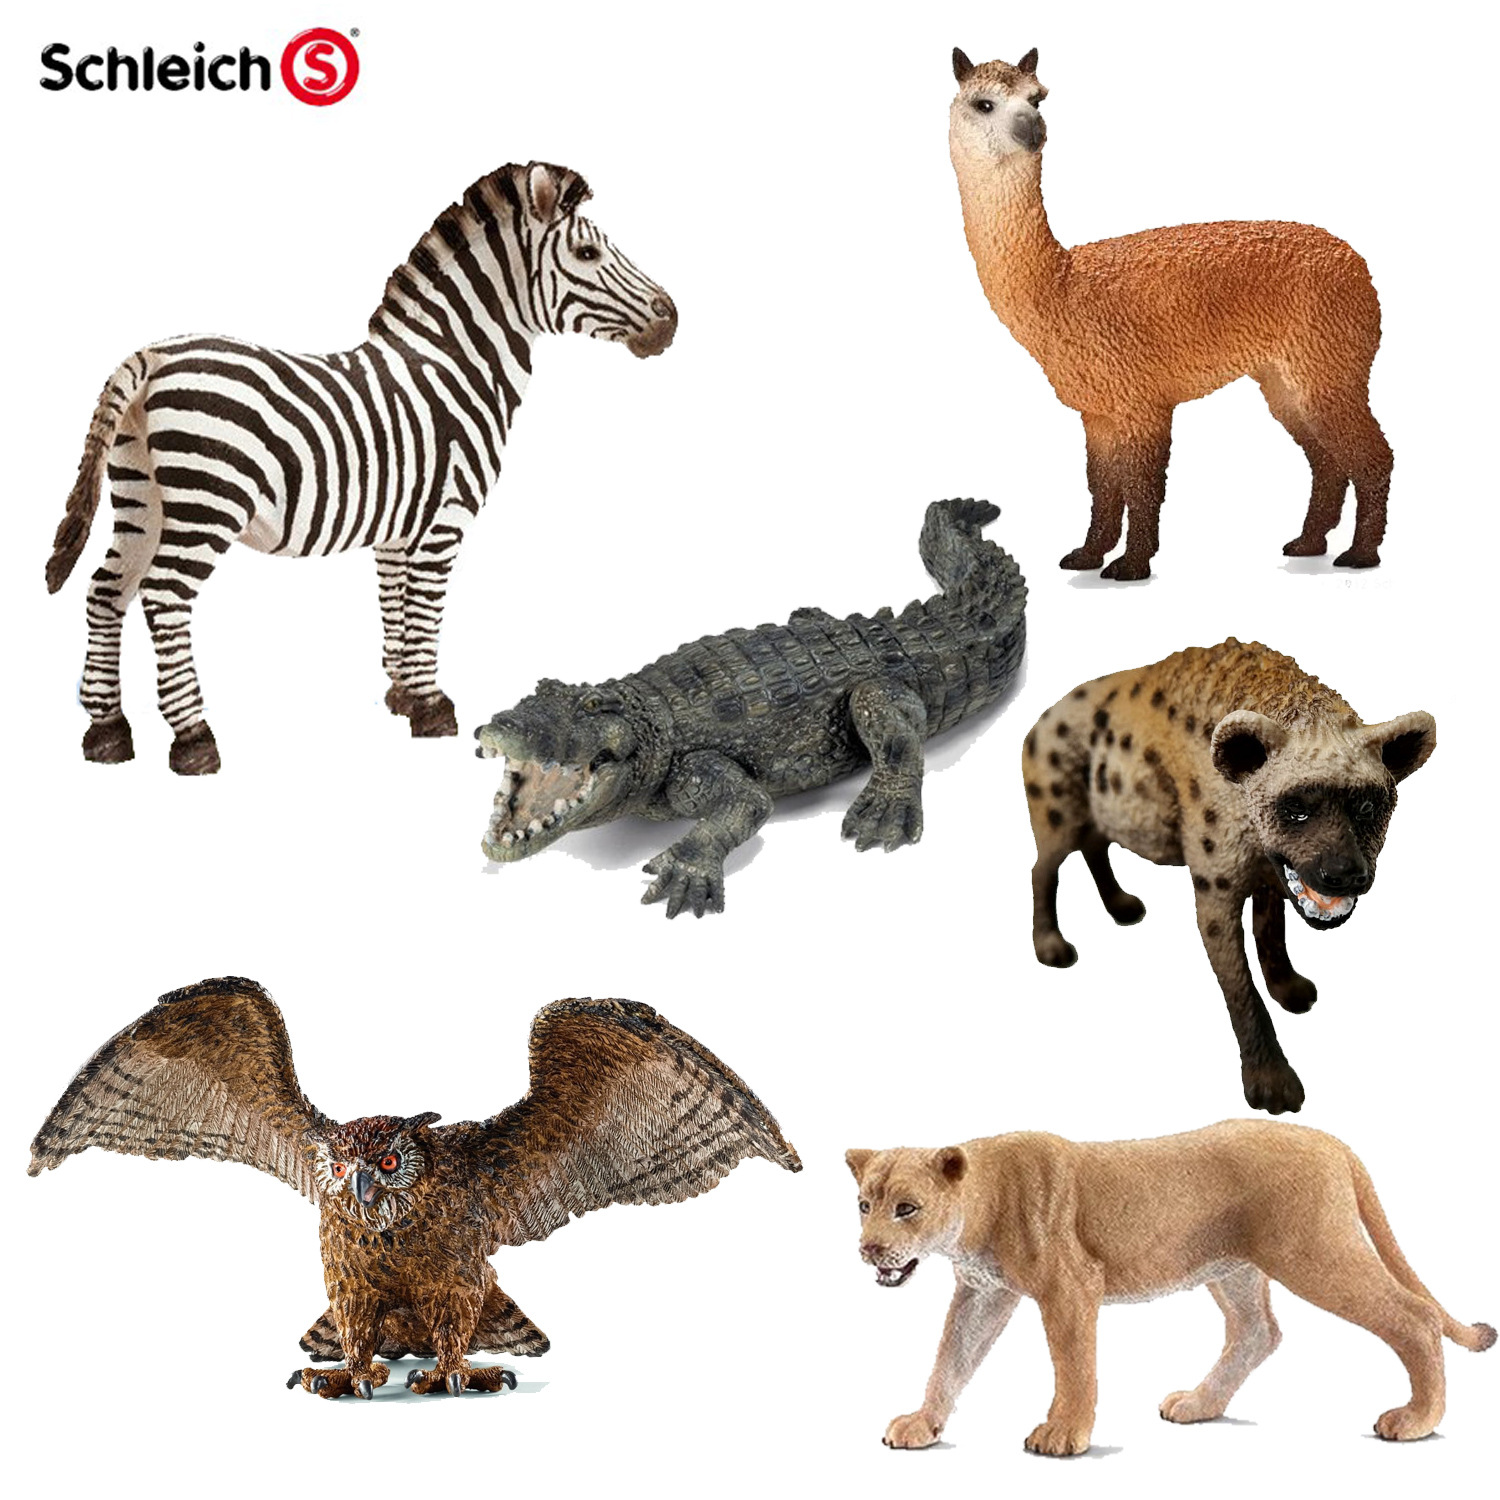 Genuine Product Germany Schleich S Schleich Animal Model Toy Model Wild Animal Multi--Selectable